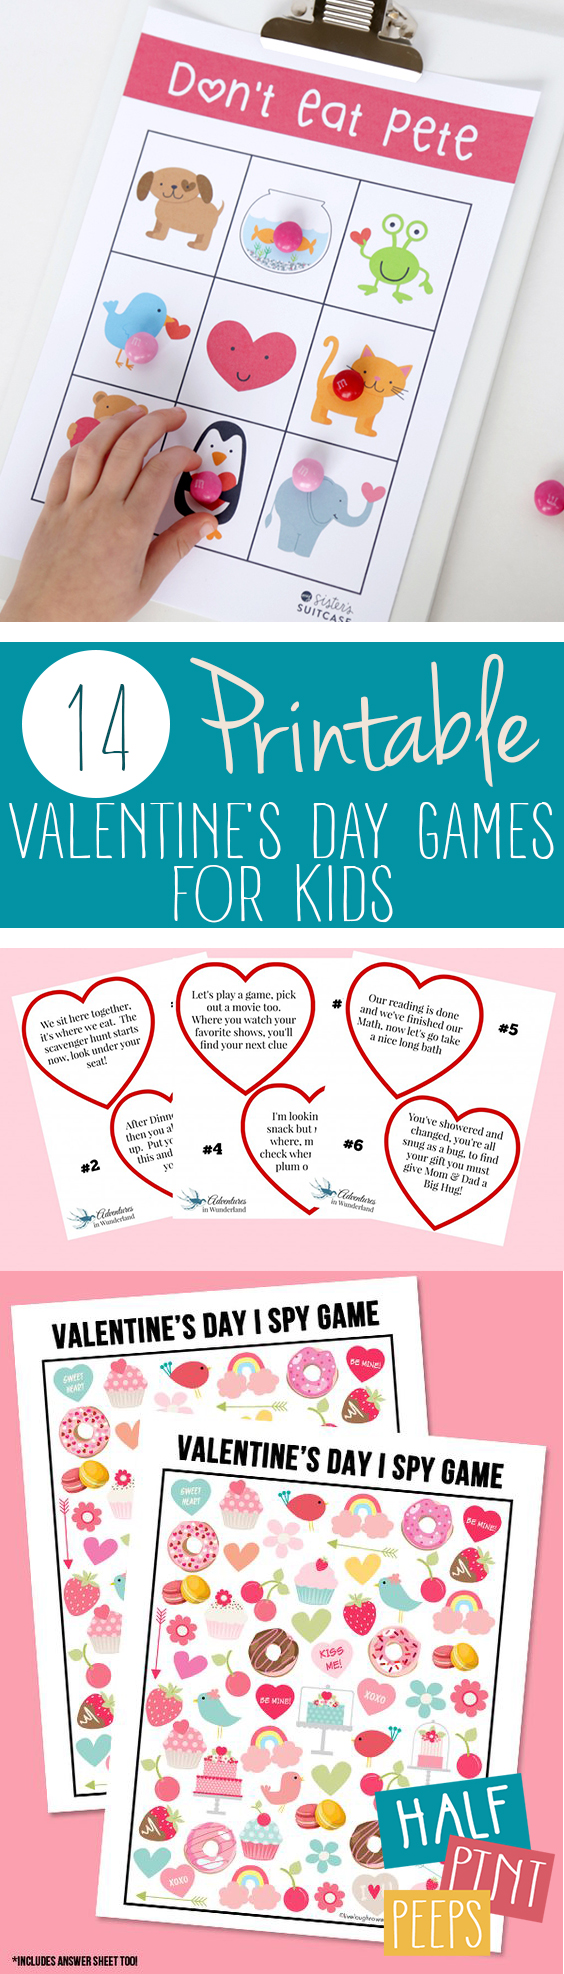 14 Printable Valentineu0027s Day Games For Kids| Printable Games, Printable  Games For Kids,